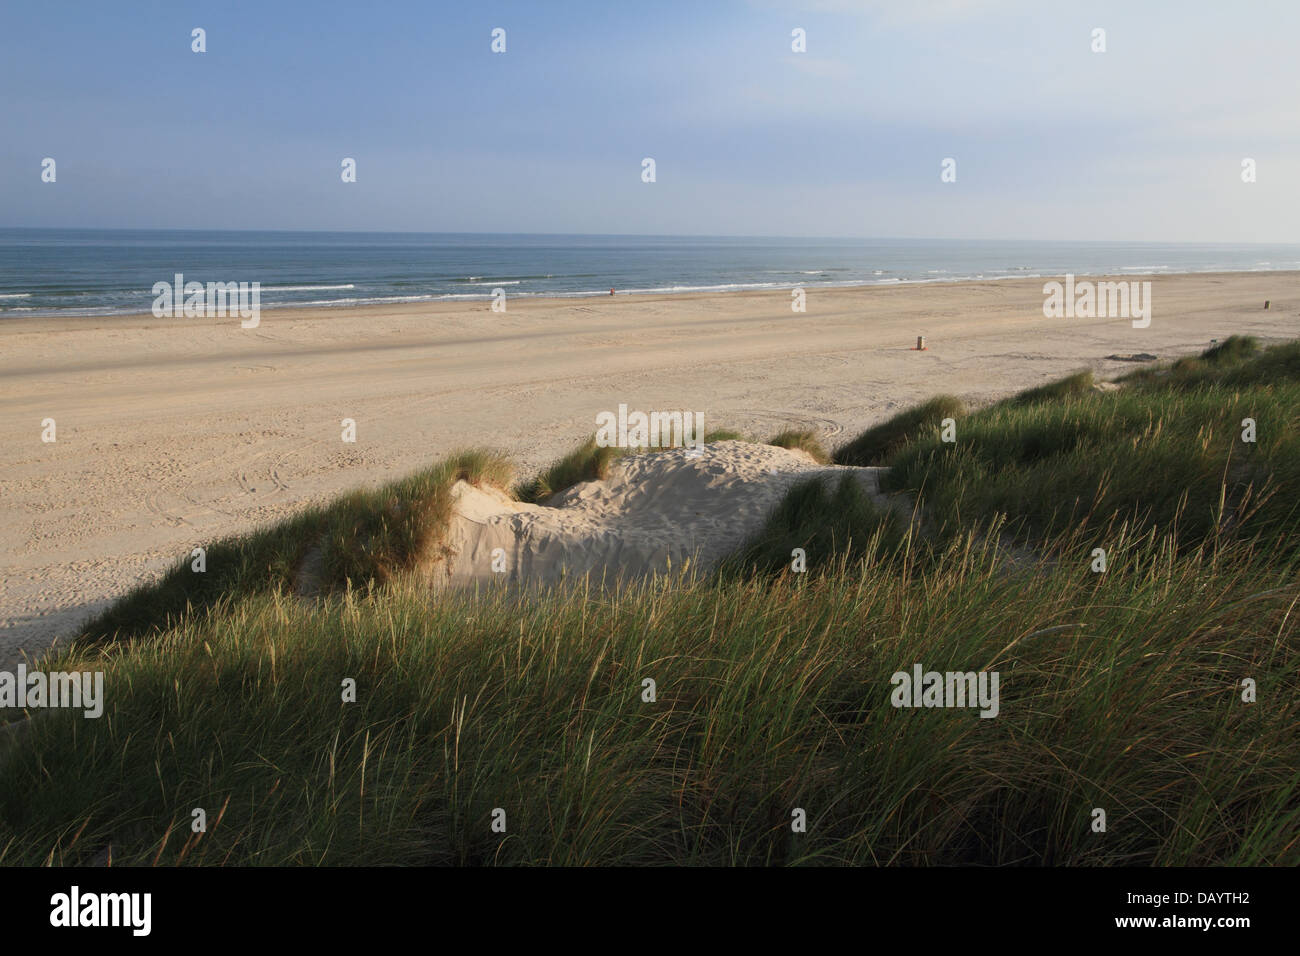 Wide, sandy beach and sand dunes at Blokhus, Denmark - Stock Image